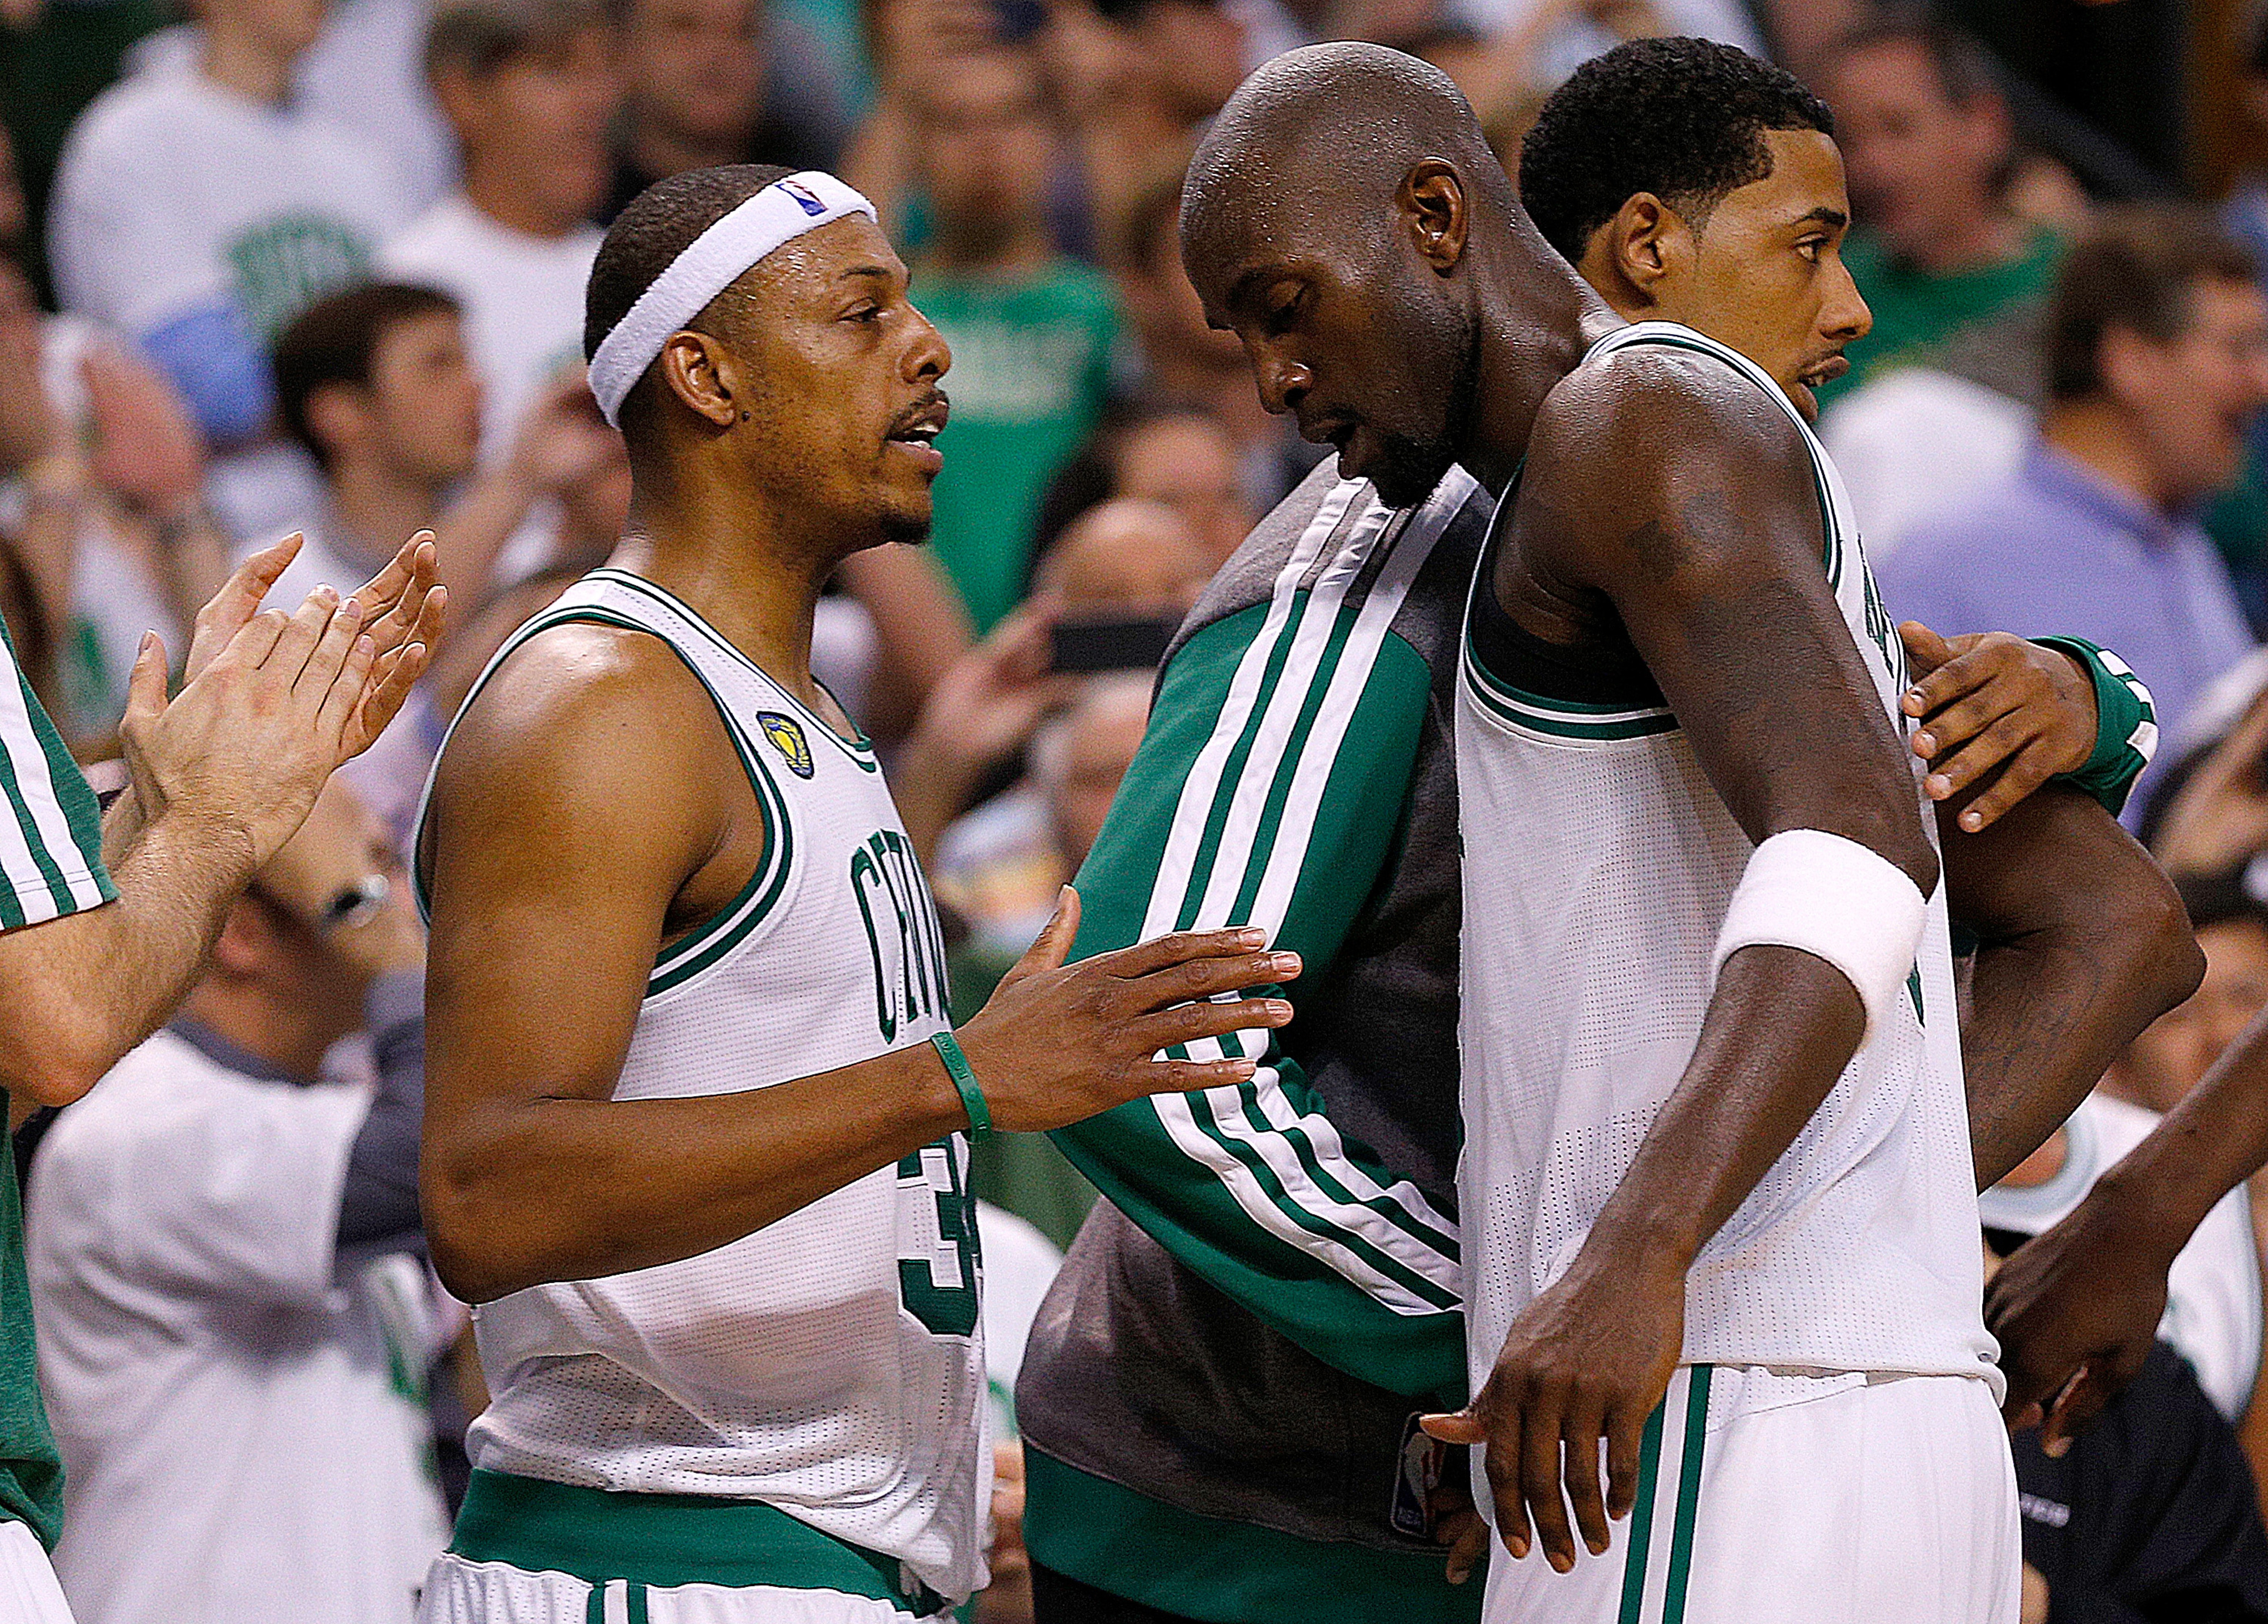 Paul Pierce and Kevin Garnett get traded as the Celtics finally blow it up